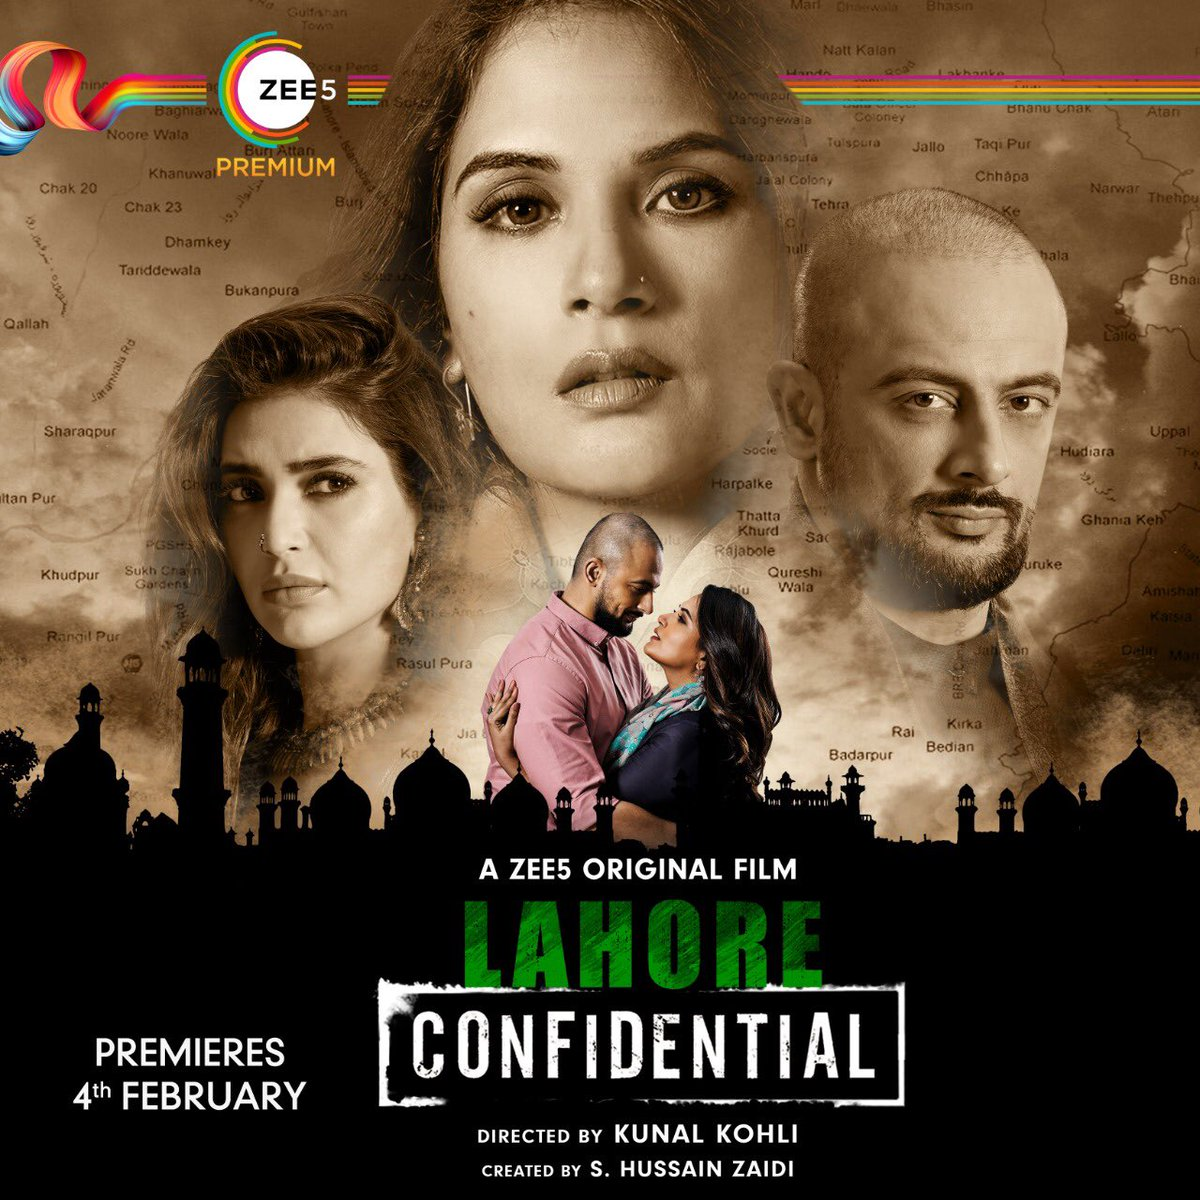 Divided by borders, united by love. Divided by tactics, united by poetry. Watch #LahoreConfidential to see which side wins. Premiering February 4th on @ZEE5Premium. #WhateverItTakes  @JarPictures @ajaygrai @kunalkohli @RichaChadha @arunodaysingh7 @KARISHMAK_TANNA @deepaksimhal